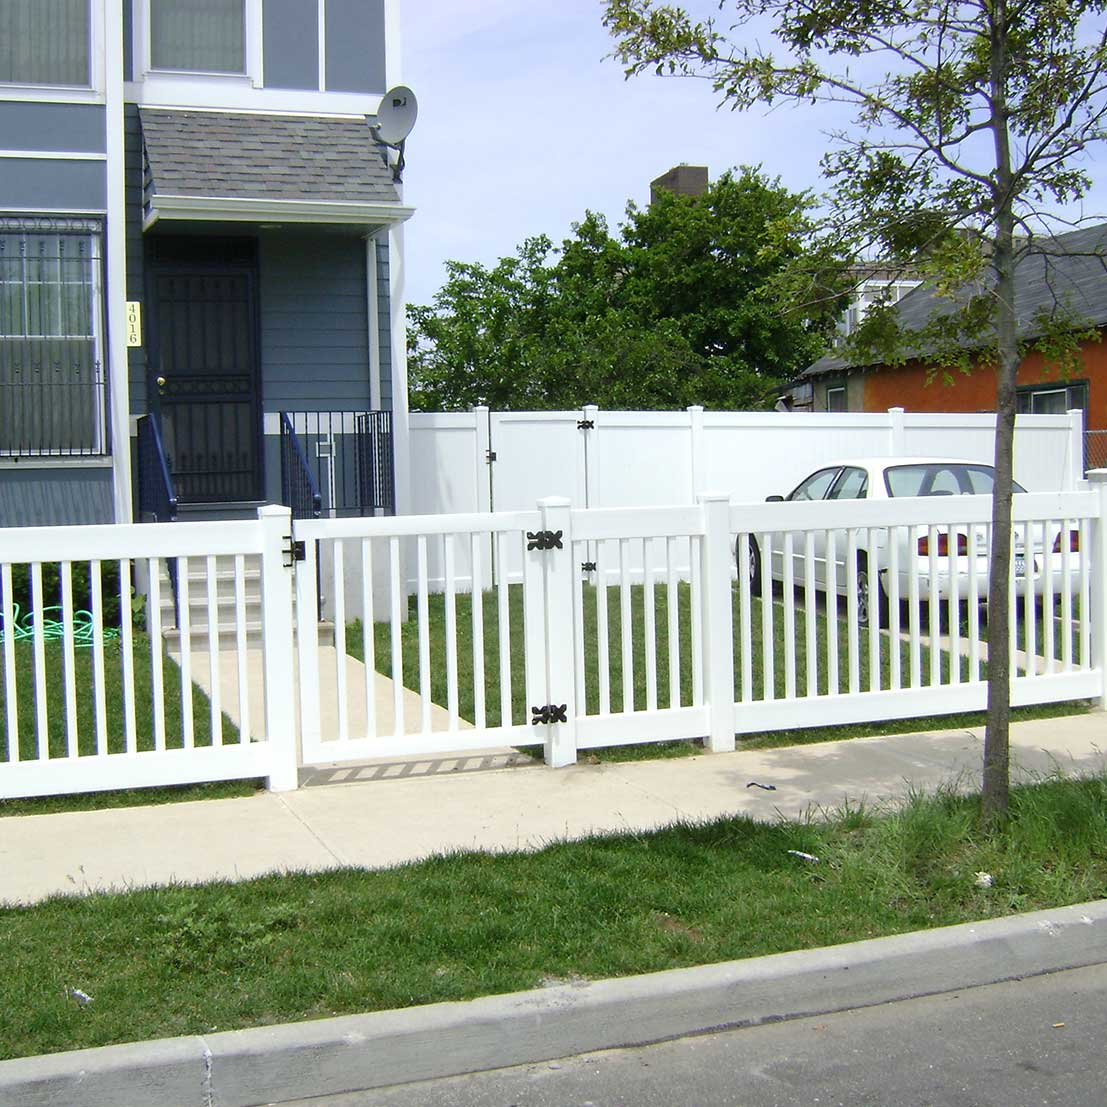 Lattice Fencing image for 1okcorral home page